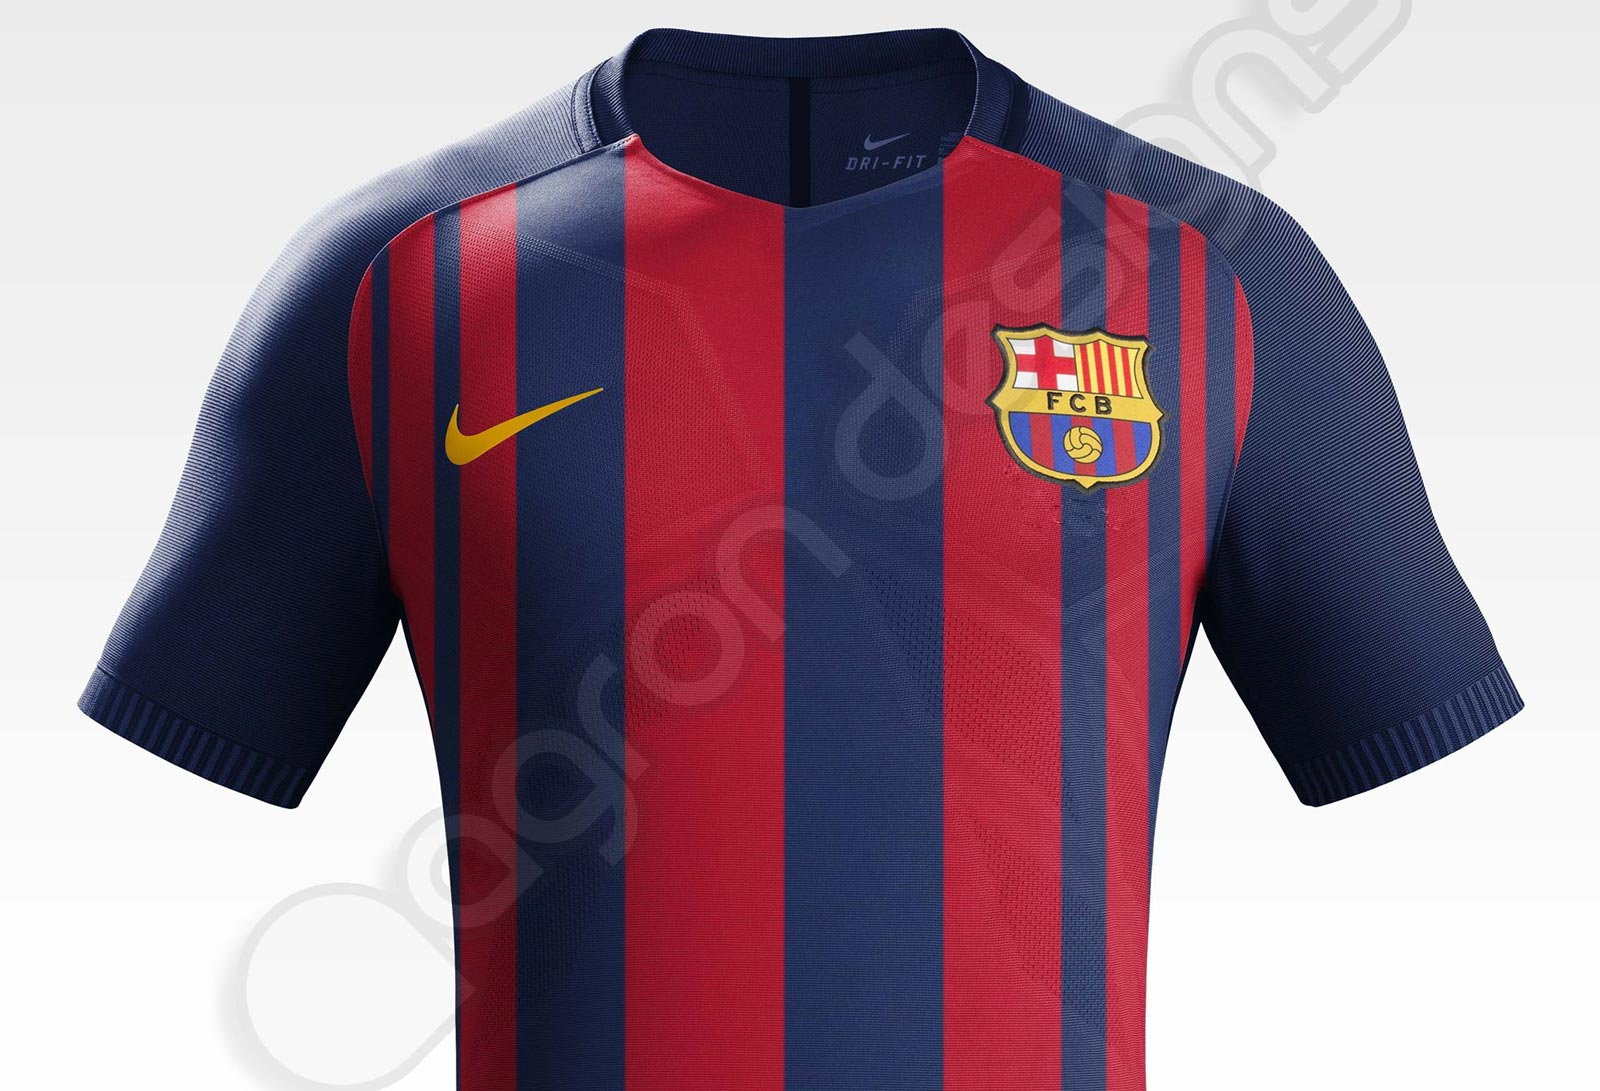 barcelona-17-18-home-kit-design-2.jpg